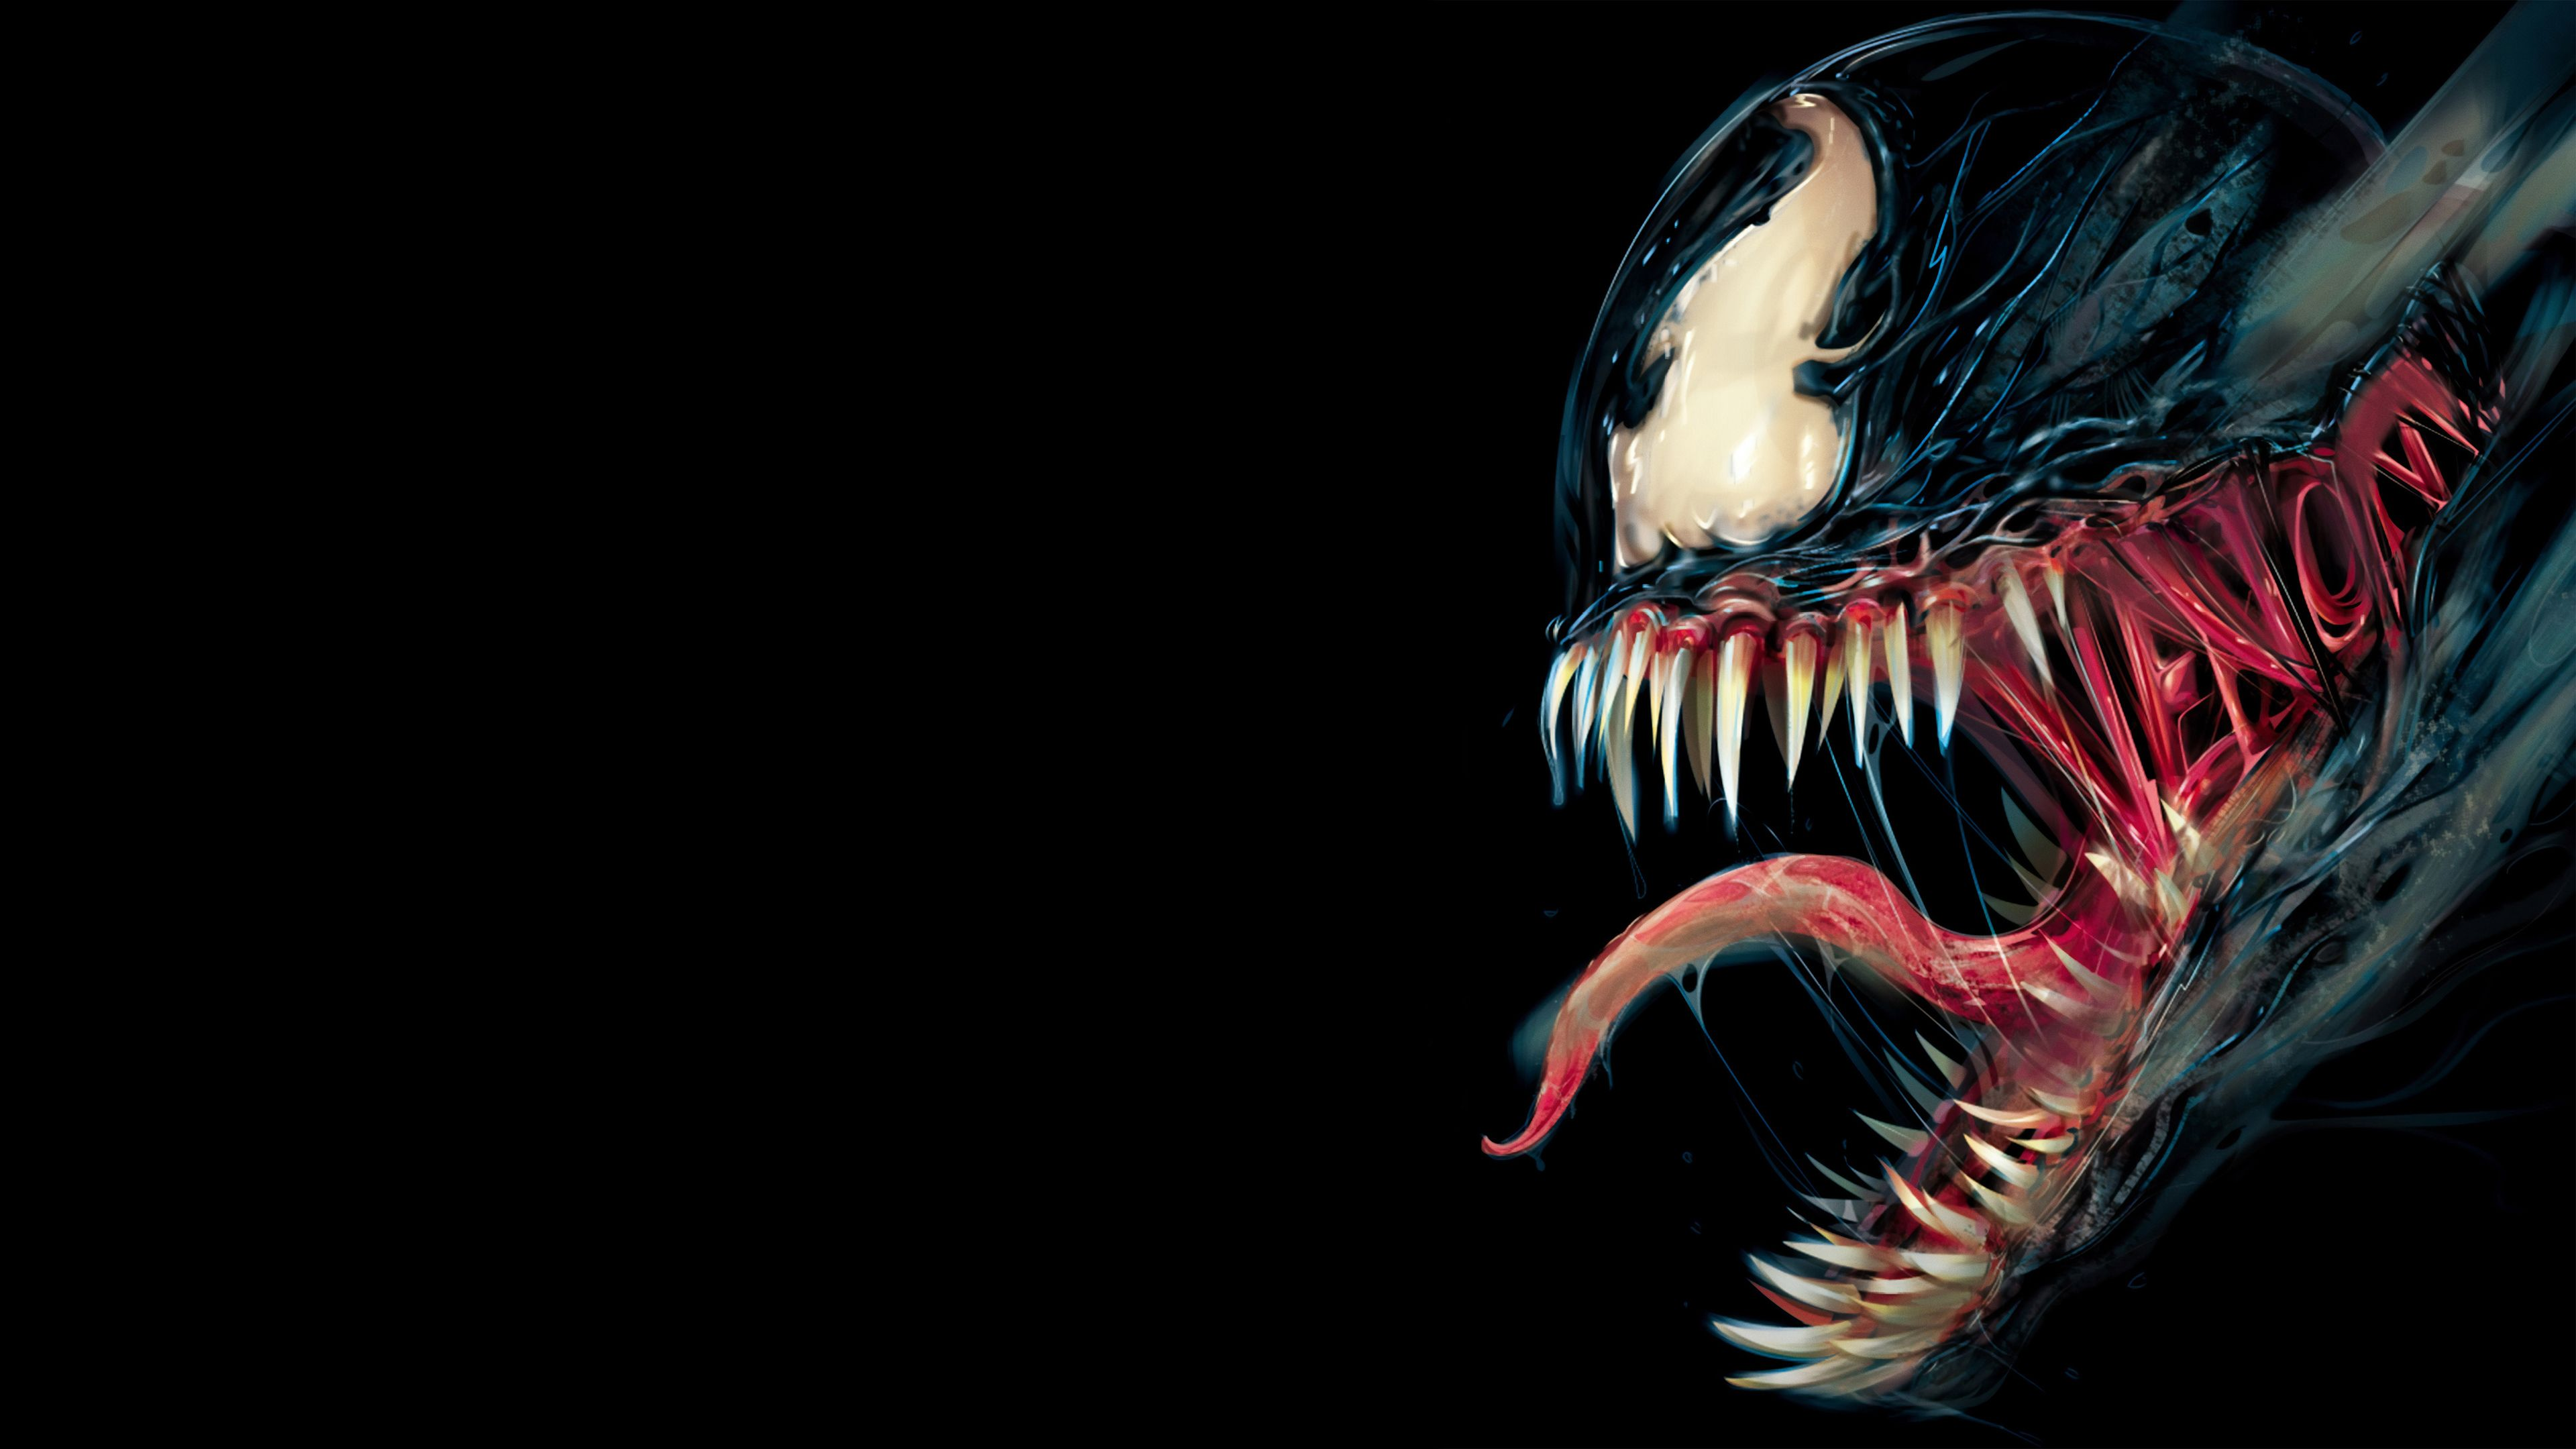 Venom Movie 4k Poster Venom Wallpapers Venom Movie Wallpapers Poster Wallpapers Movies Wallpapers In 2020 Movie Wallpapers Venom Movie Watercolor Wallpaper Iphone